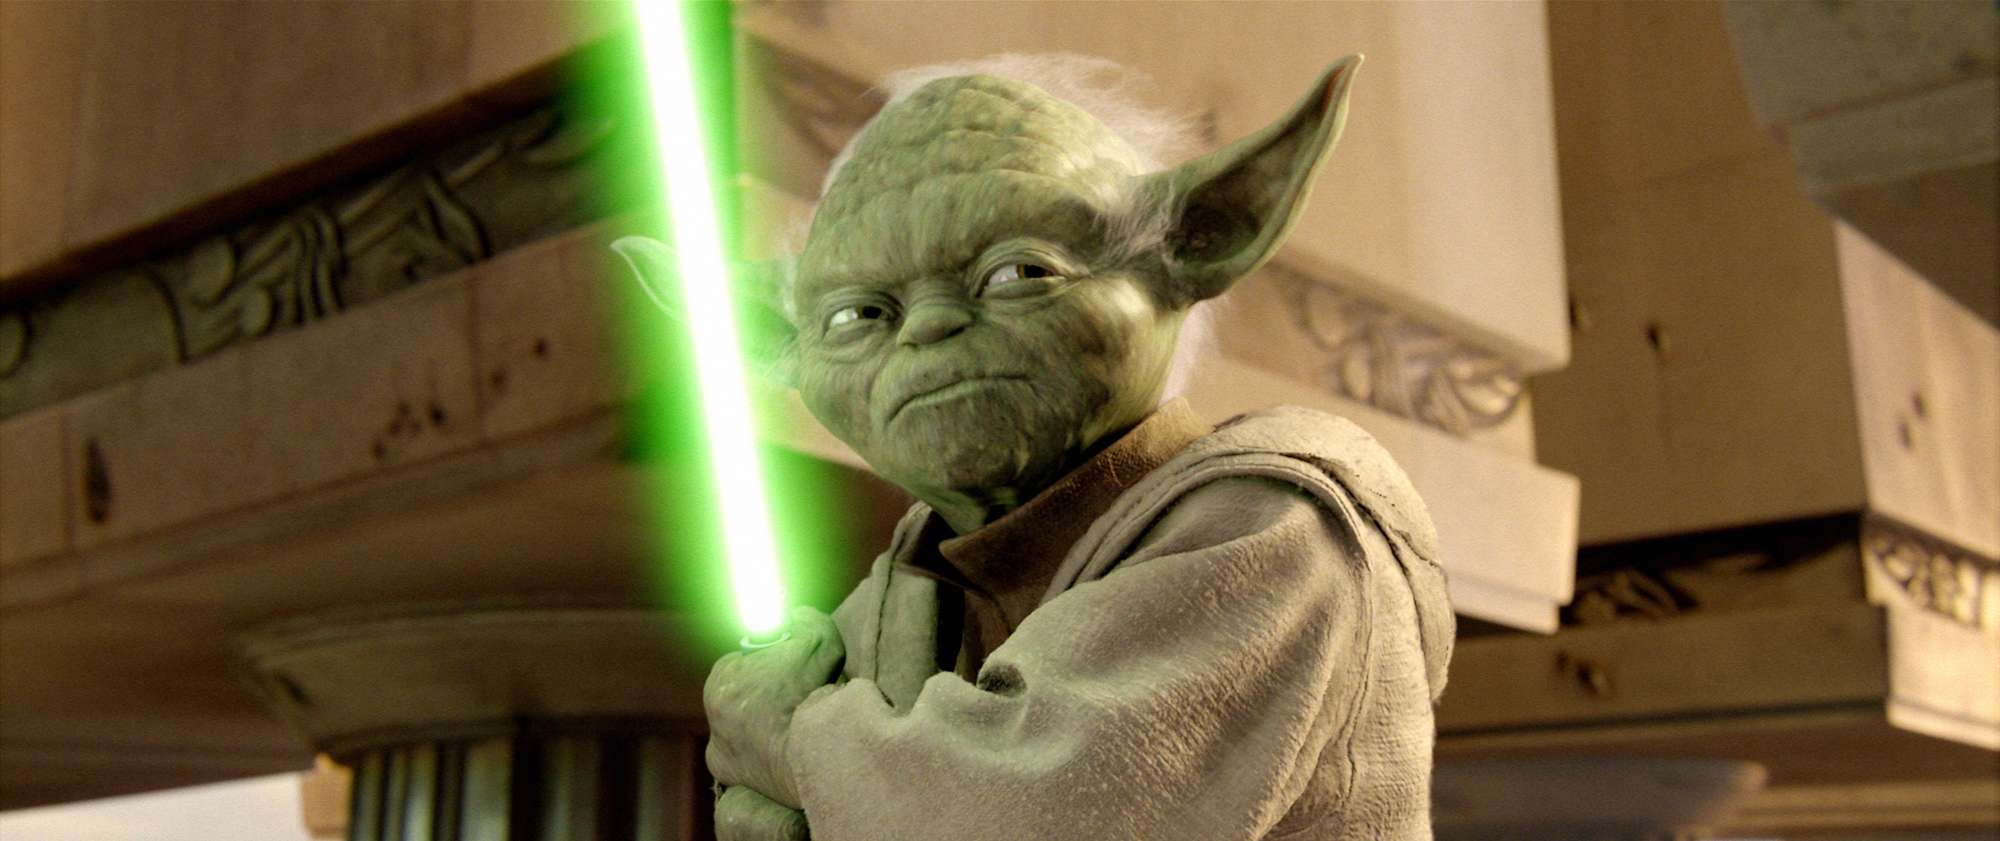 Yoda regresa en Star Wars: Episodio IX